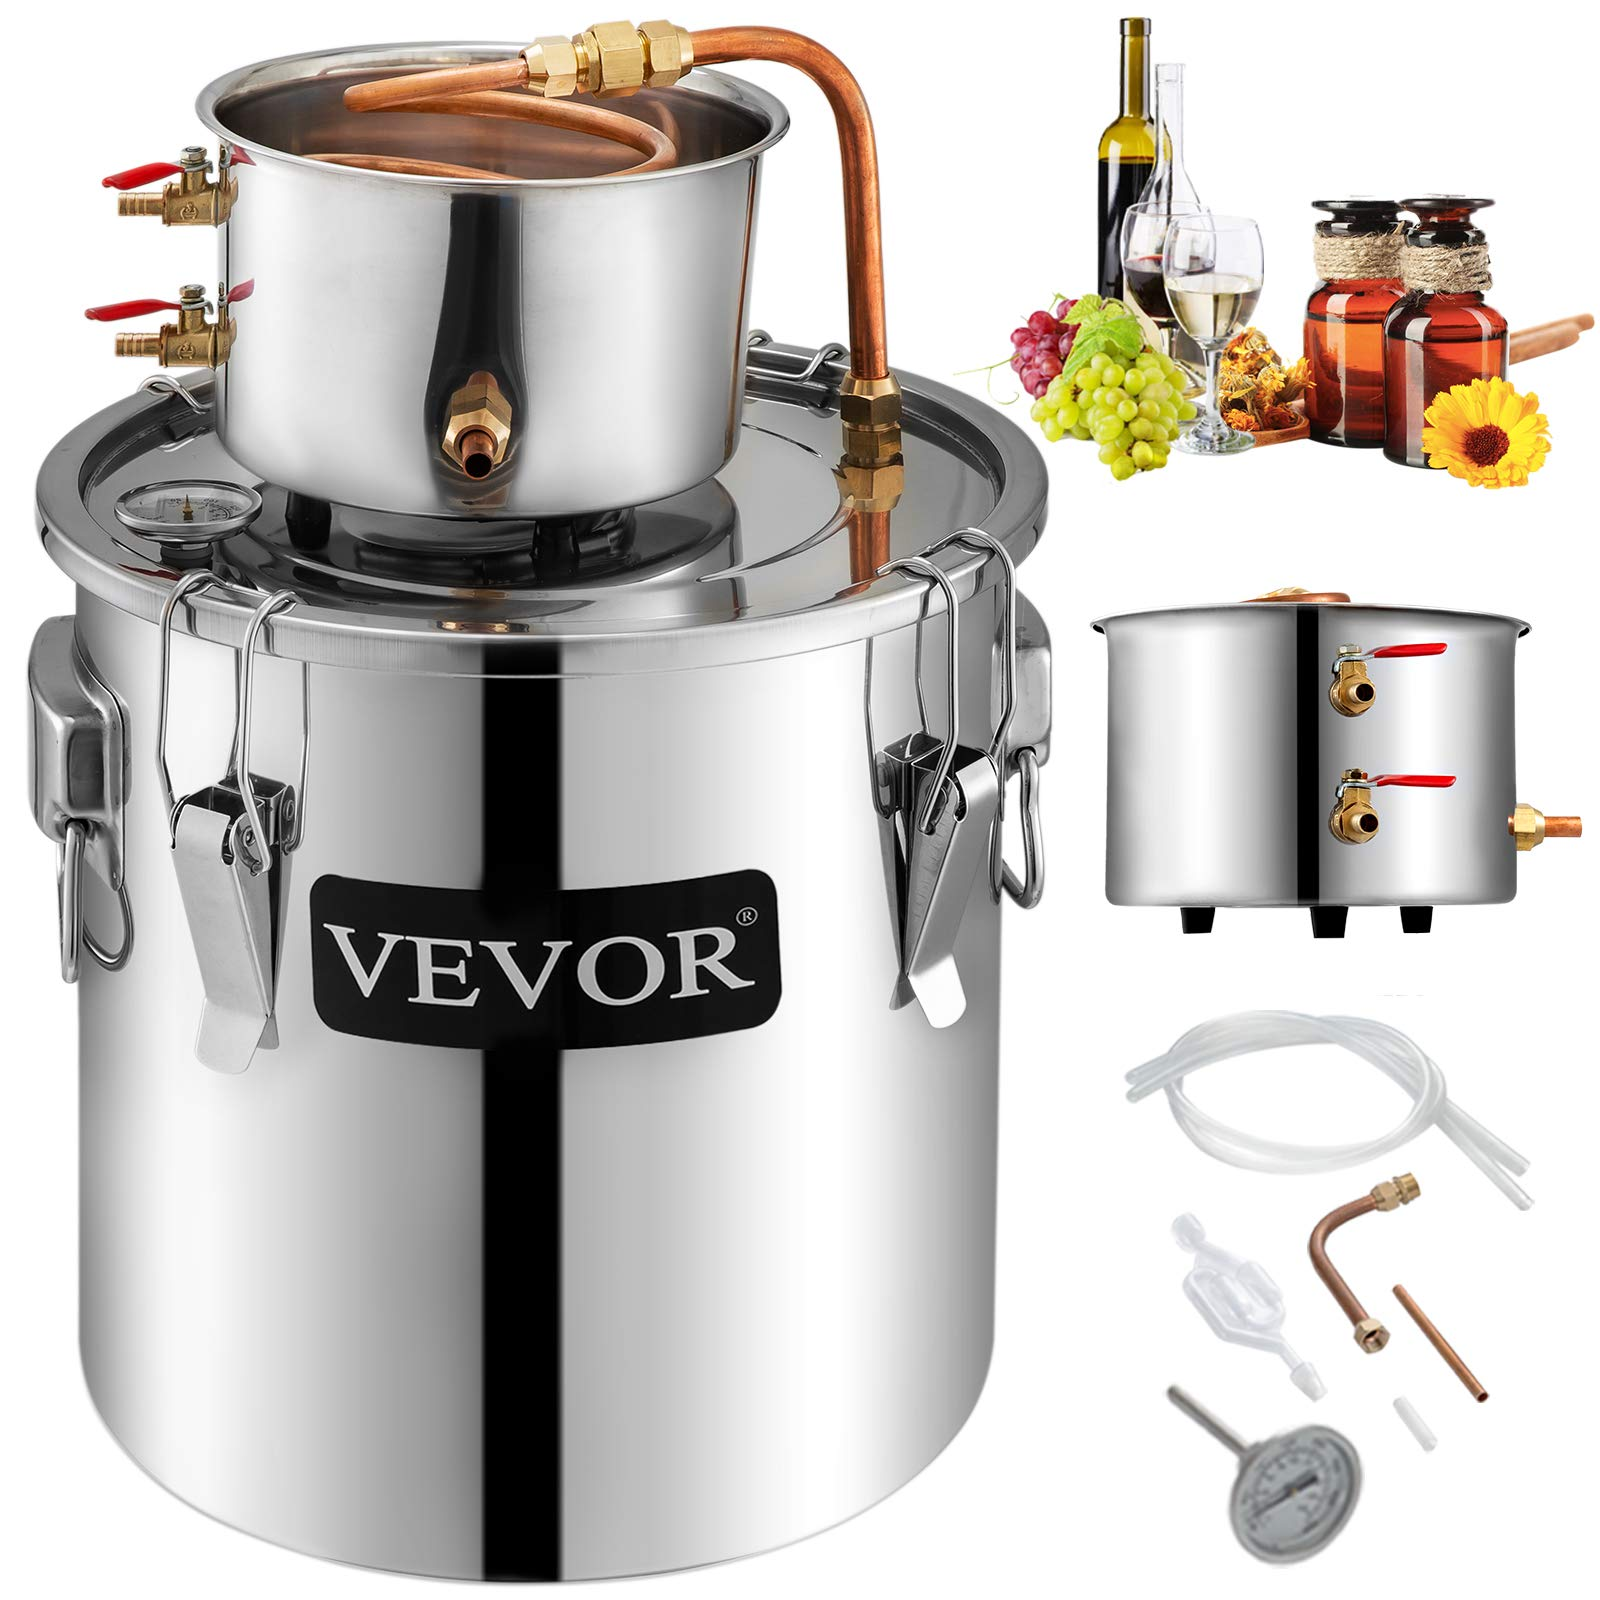 VEVOR Moonshine Still 9.6Gal 38L Stainless Steel Water Alcohol Distiller Copper Tube Home Brewing Kit Build-in Thermometer for DIY Whisky Wine Brandy, Sliver by Vevor